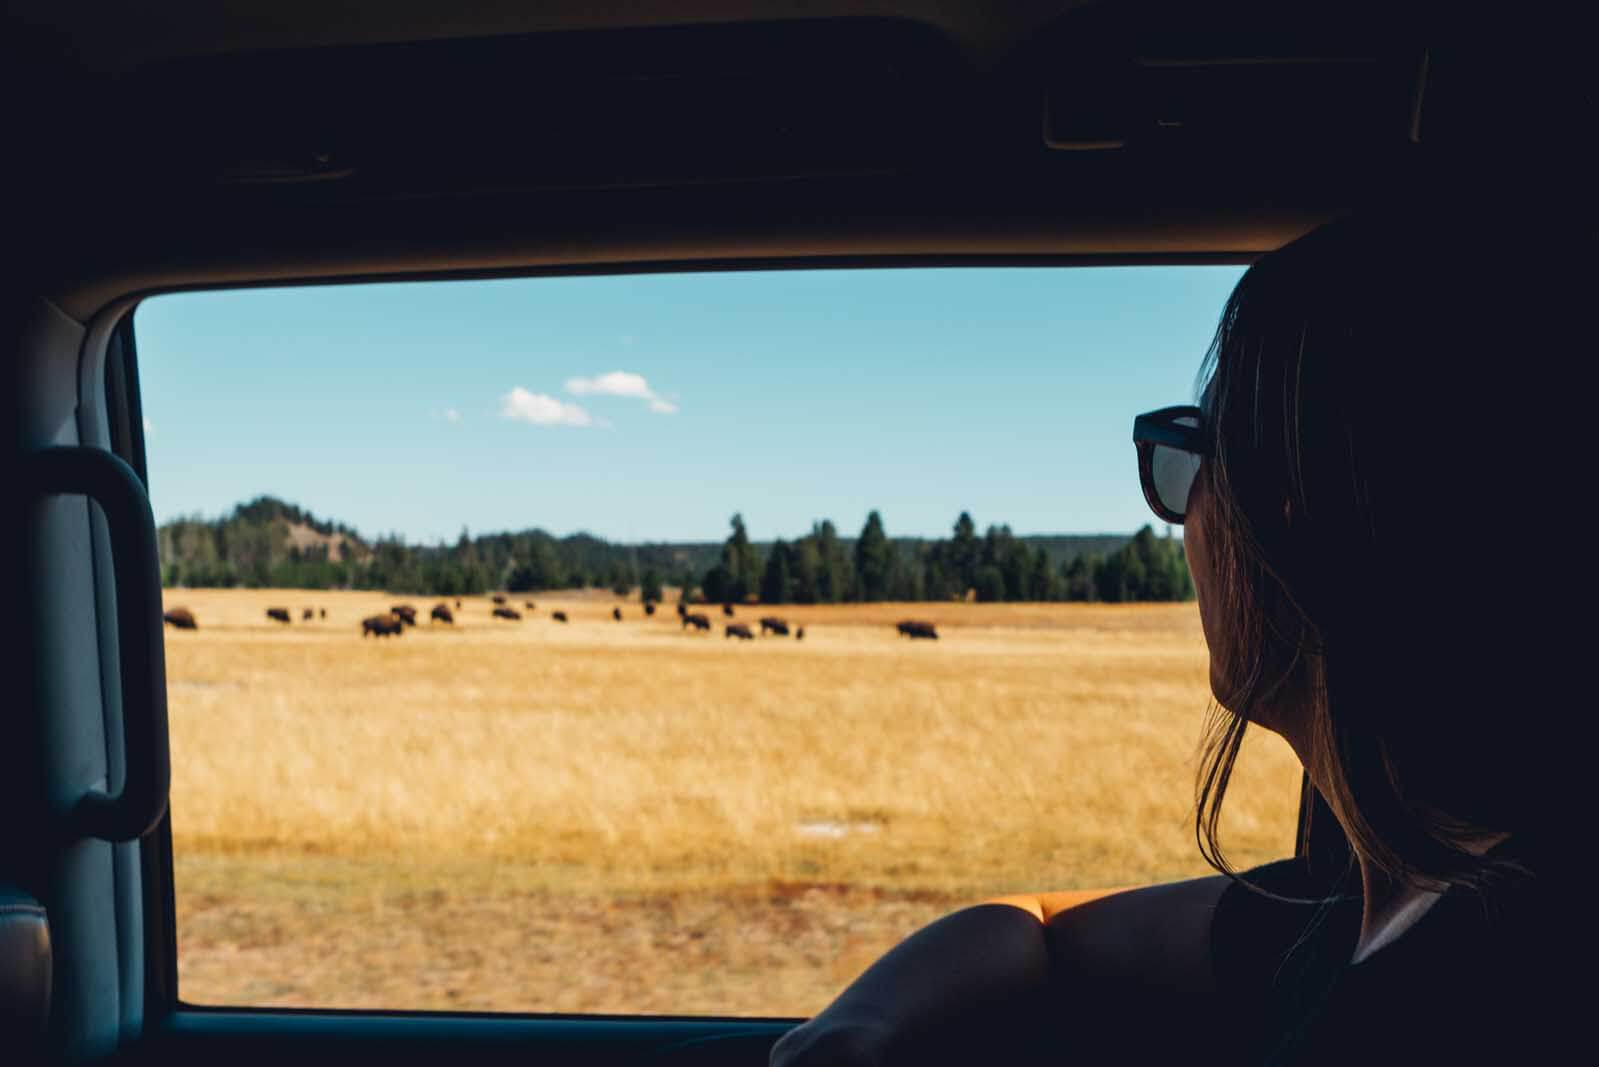 Megan looking out the window of the car driving passed Bison in Yellowstone National Park